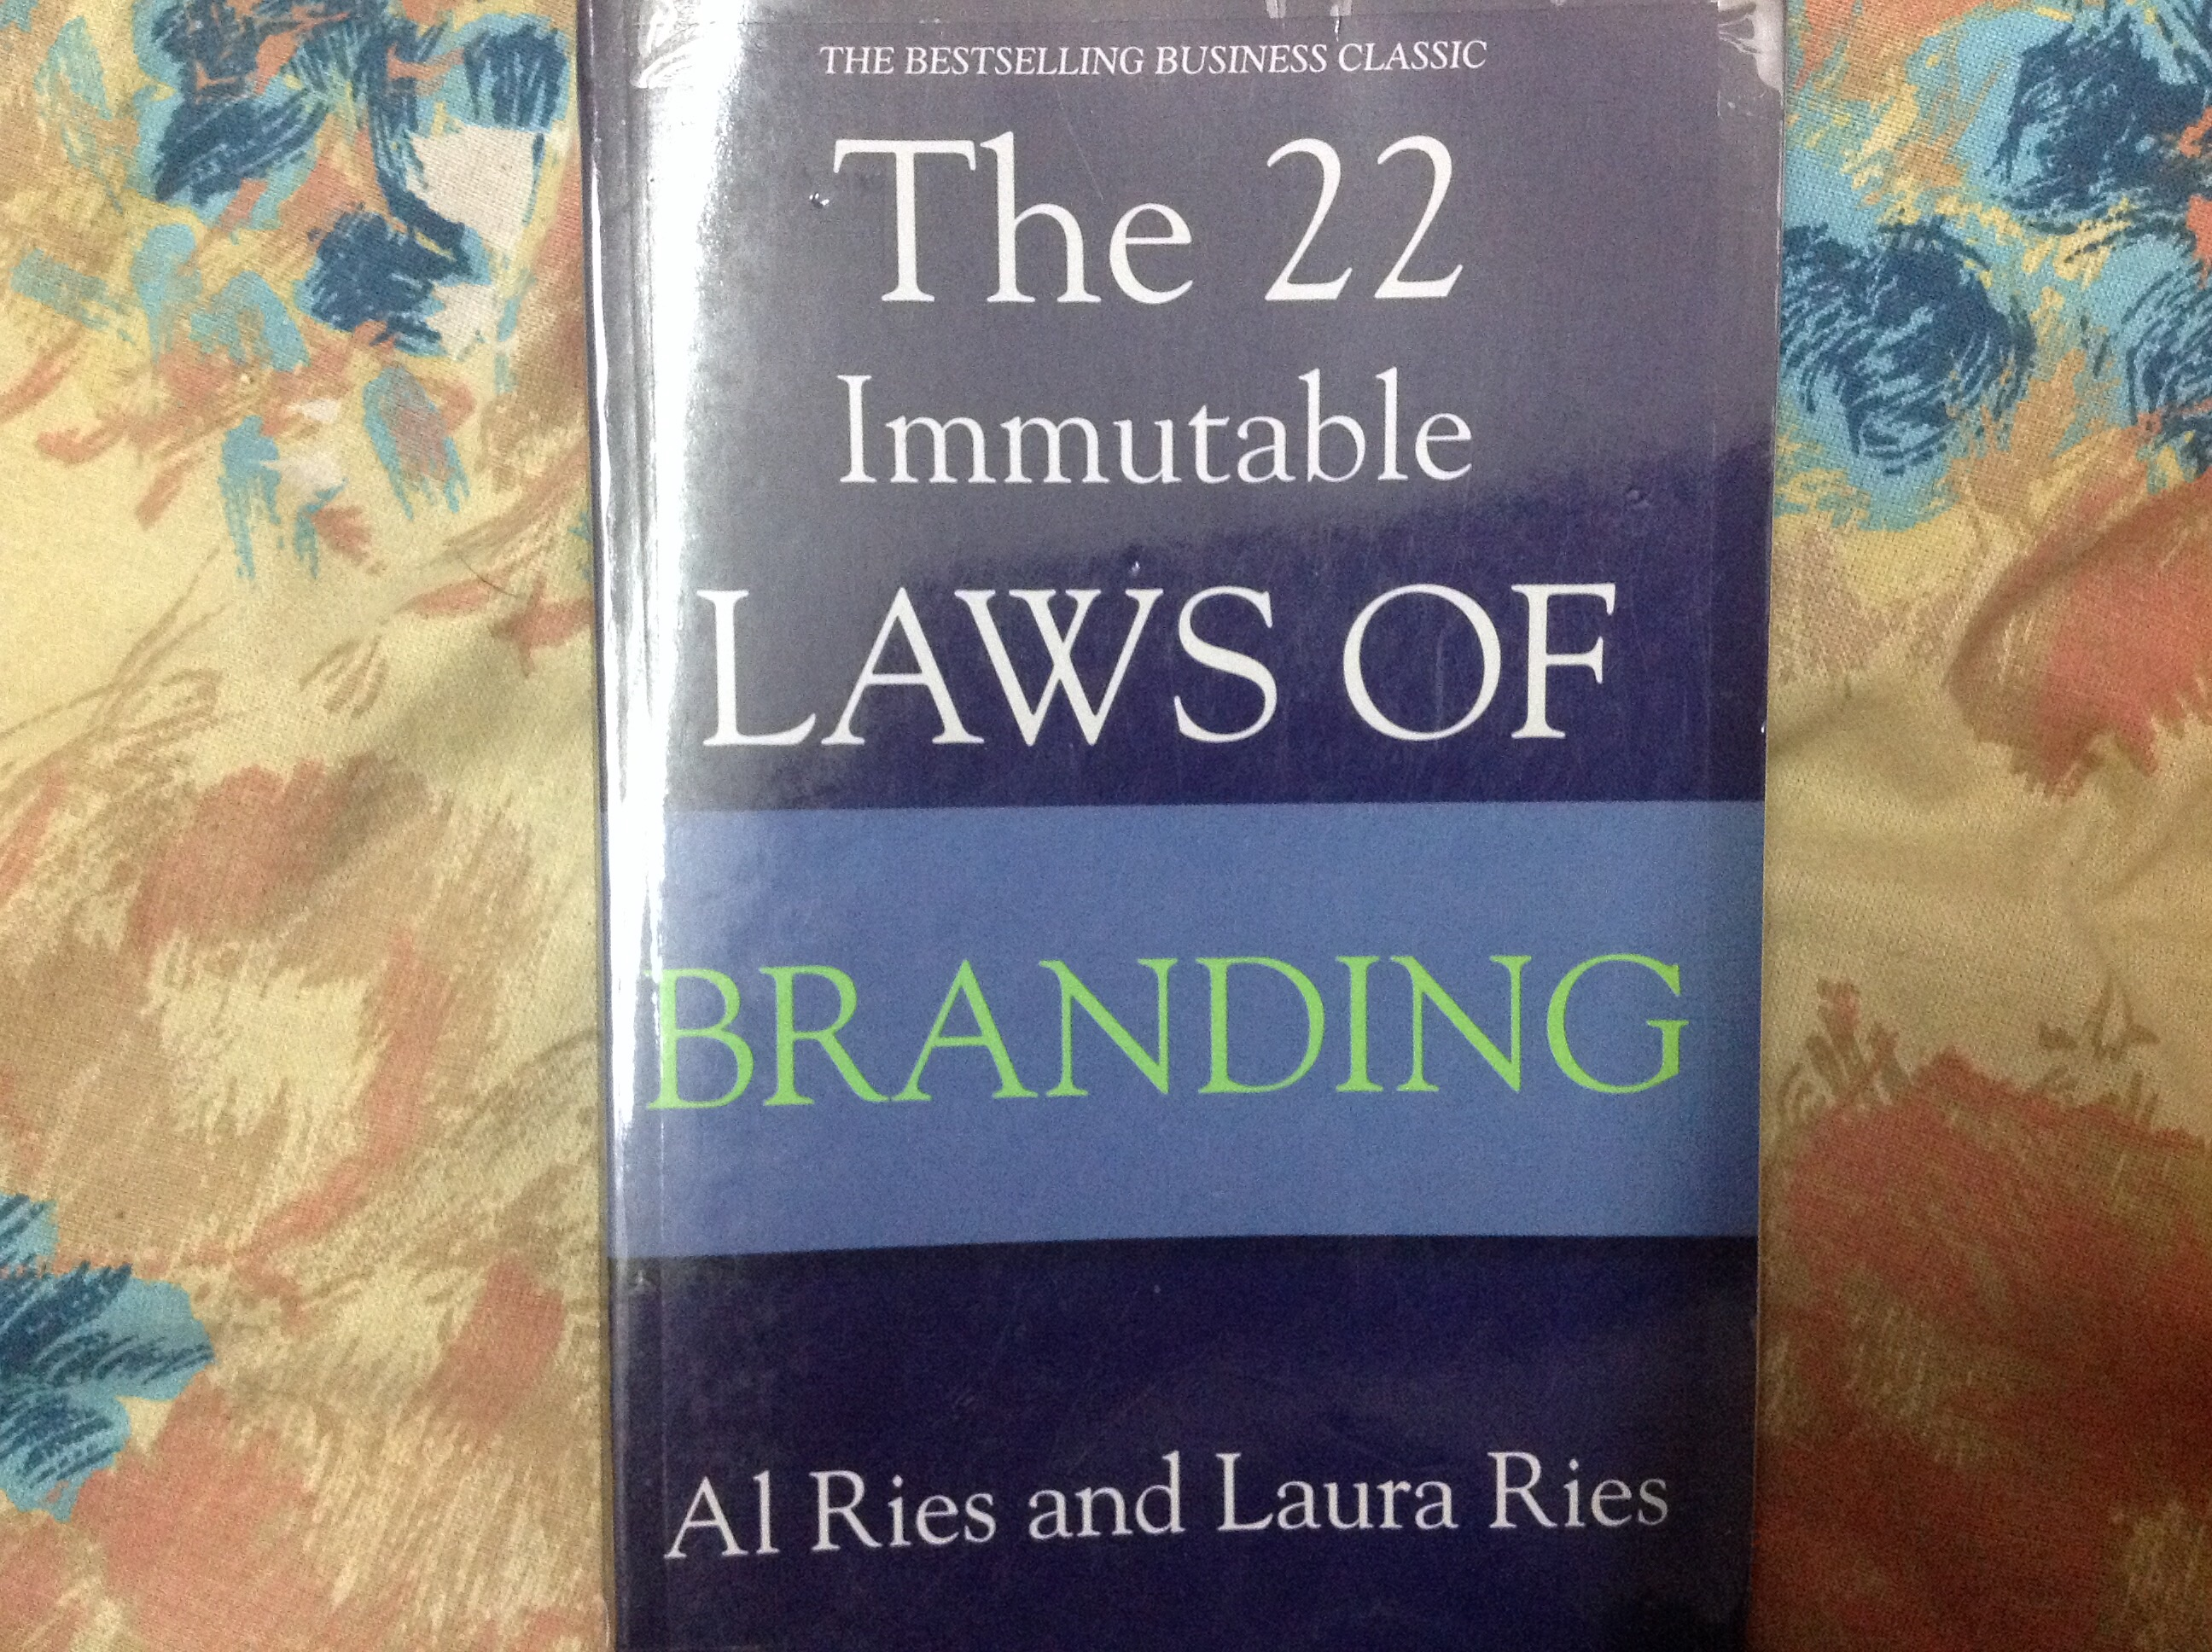 'The 22 Immutable Laws of Branding' by Al Ries and Laura Ries